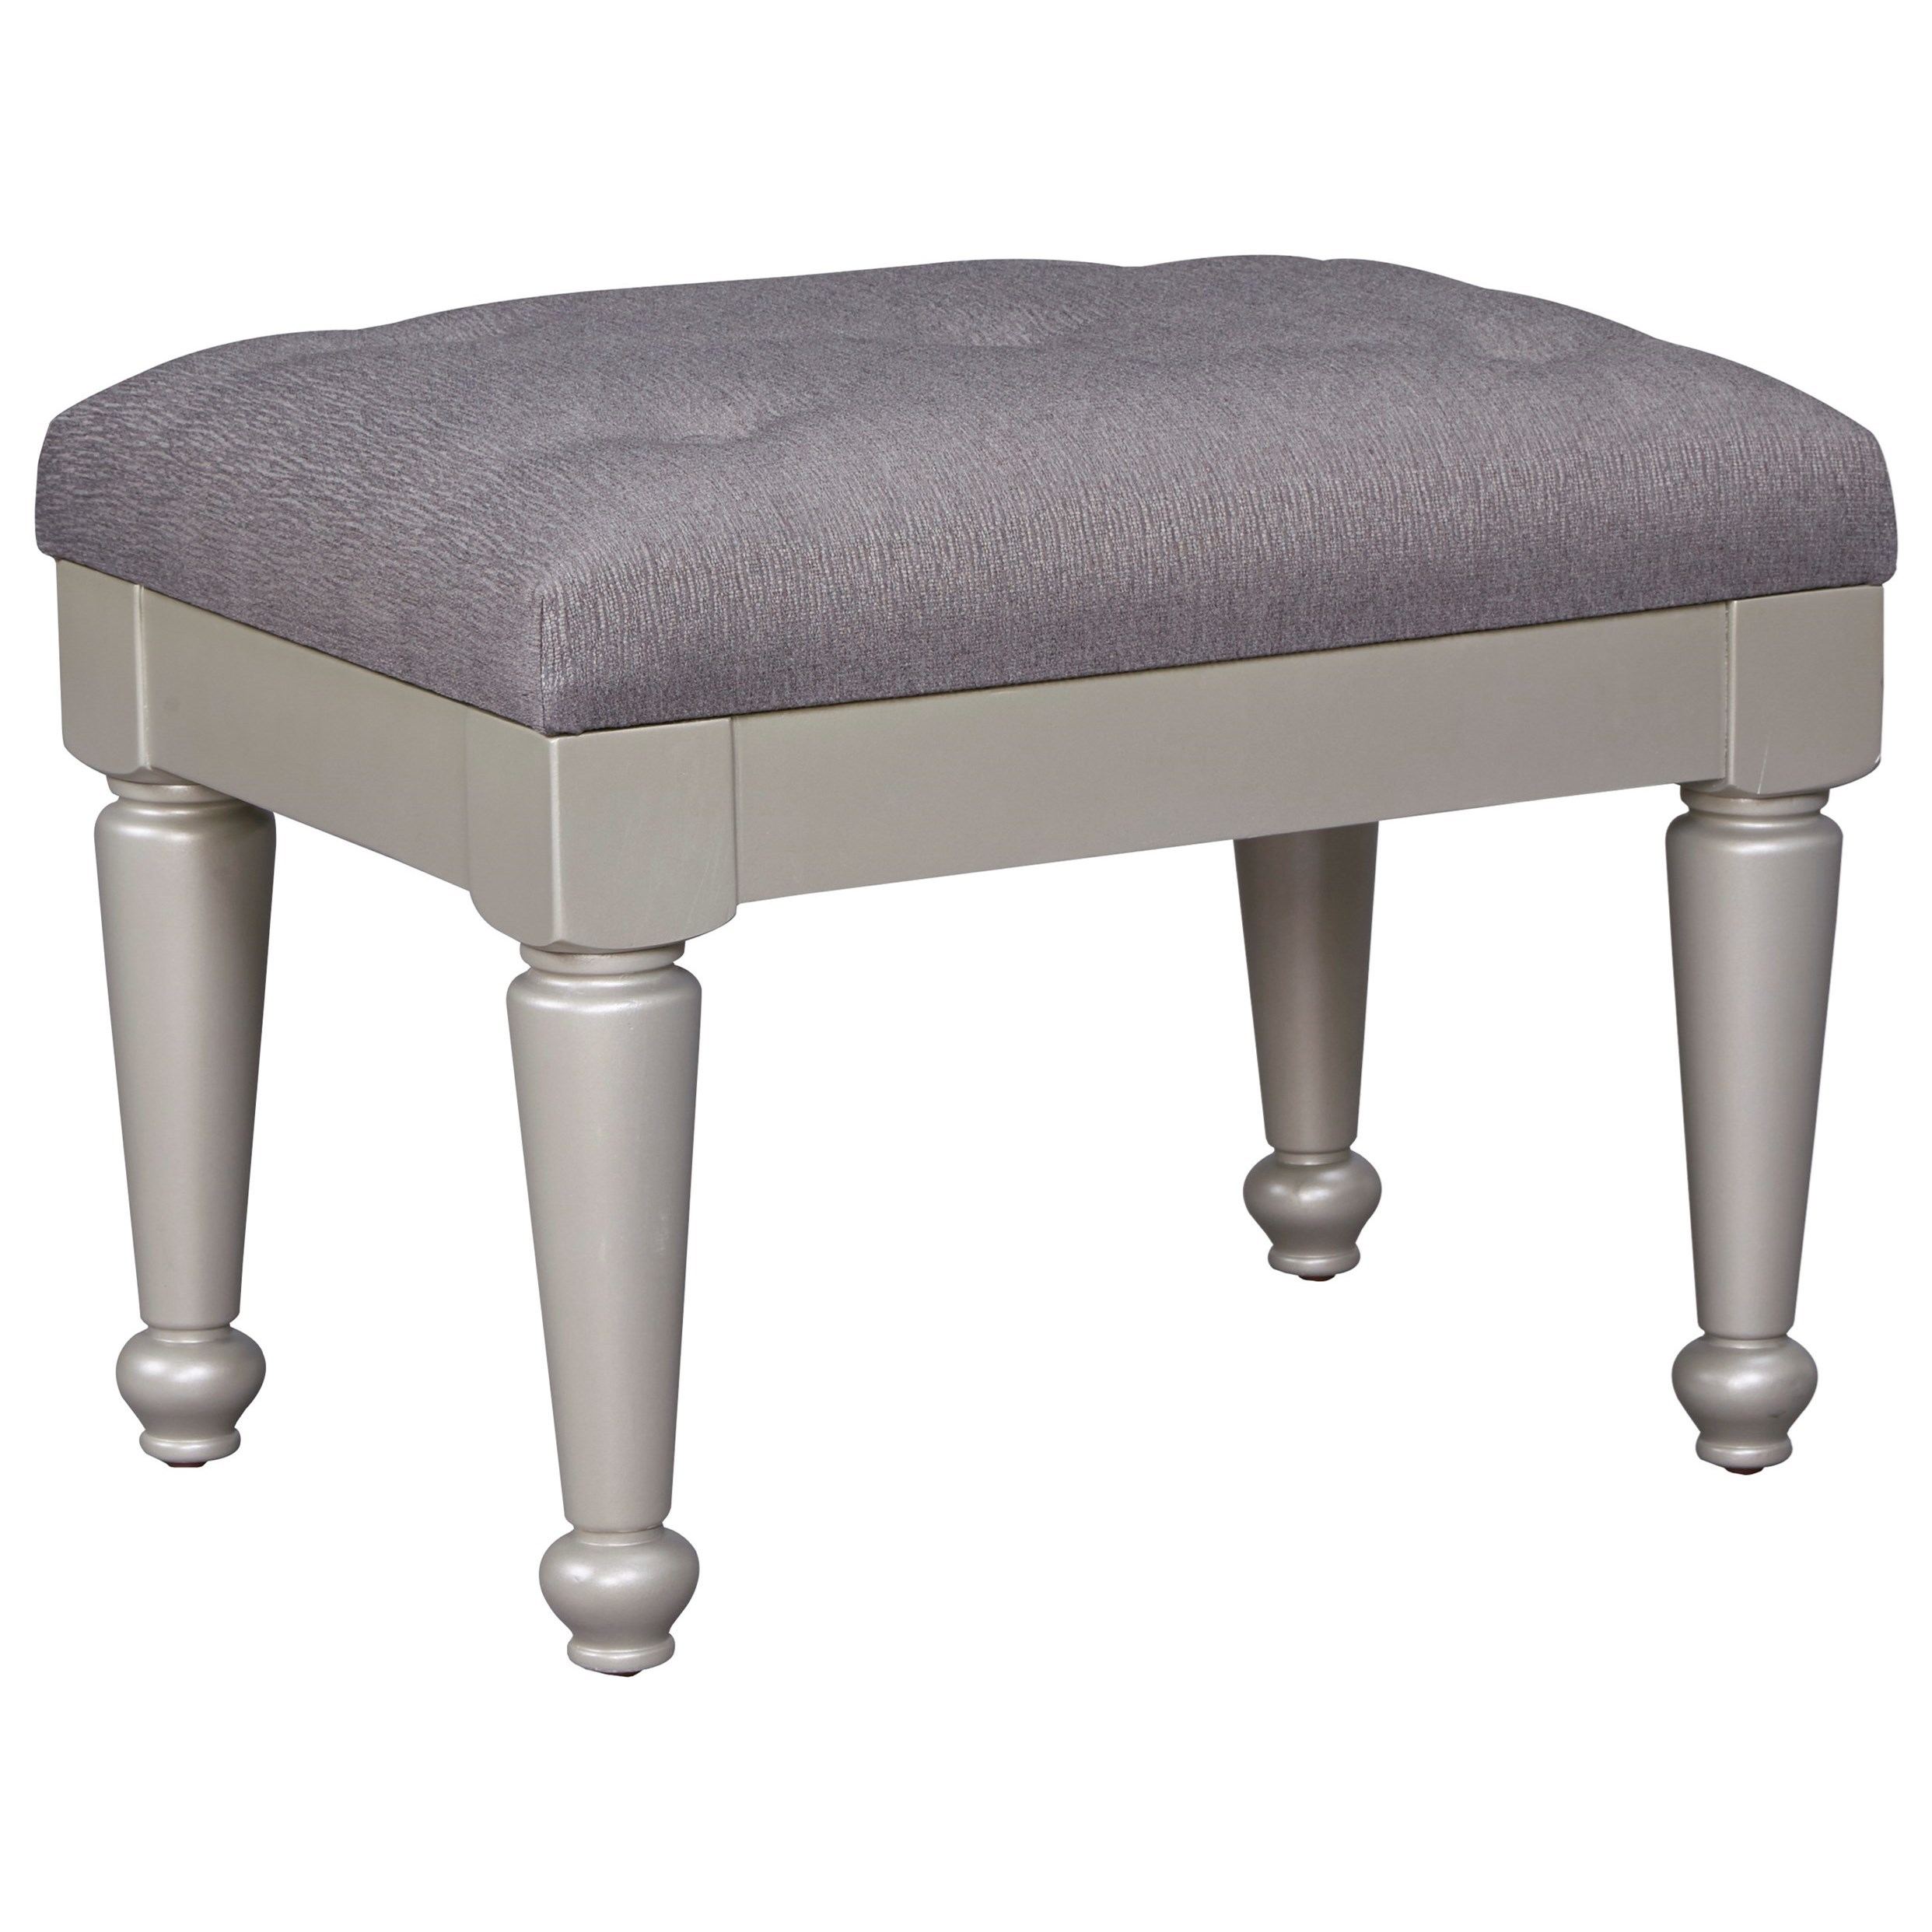 Signature Design by Ashley Coralayne Upholstered Stool  - Item Number: B650-01